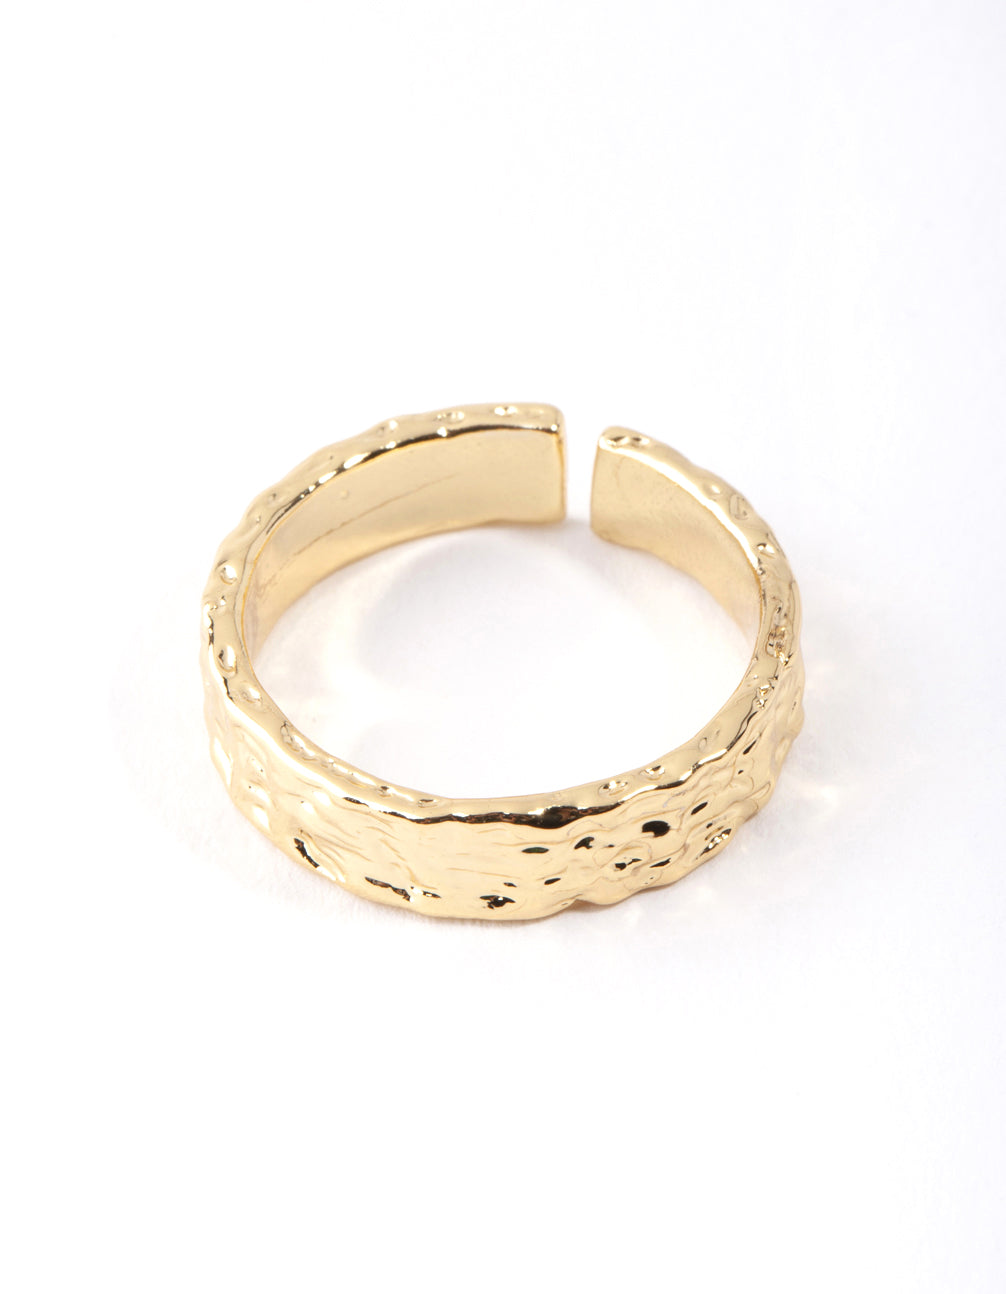 Real Gold Plated Molten Adjustable Ring